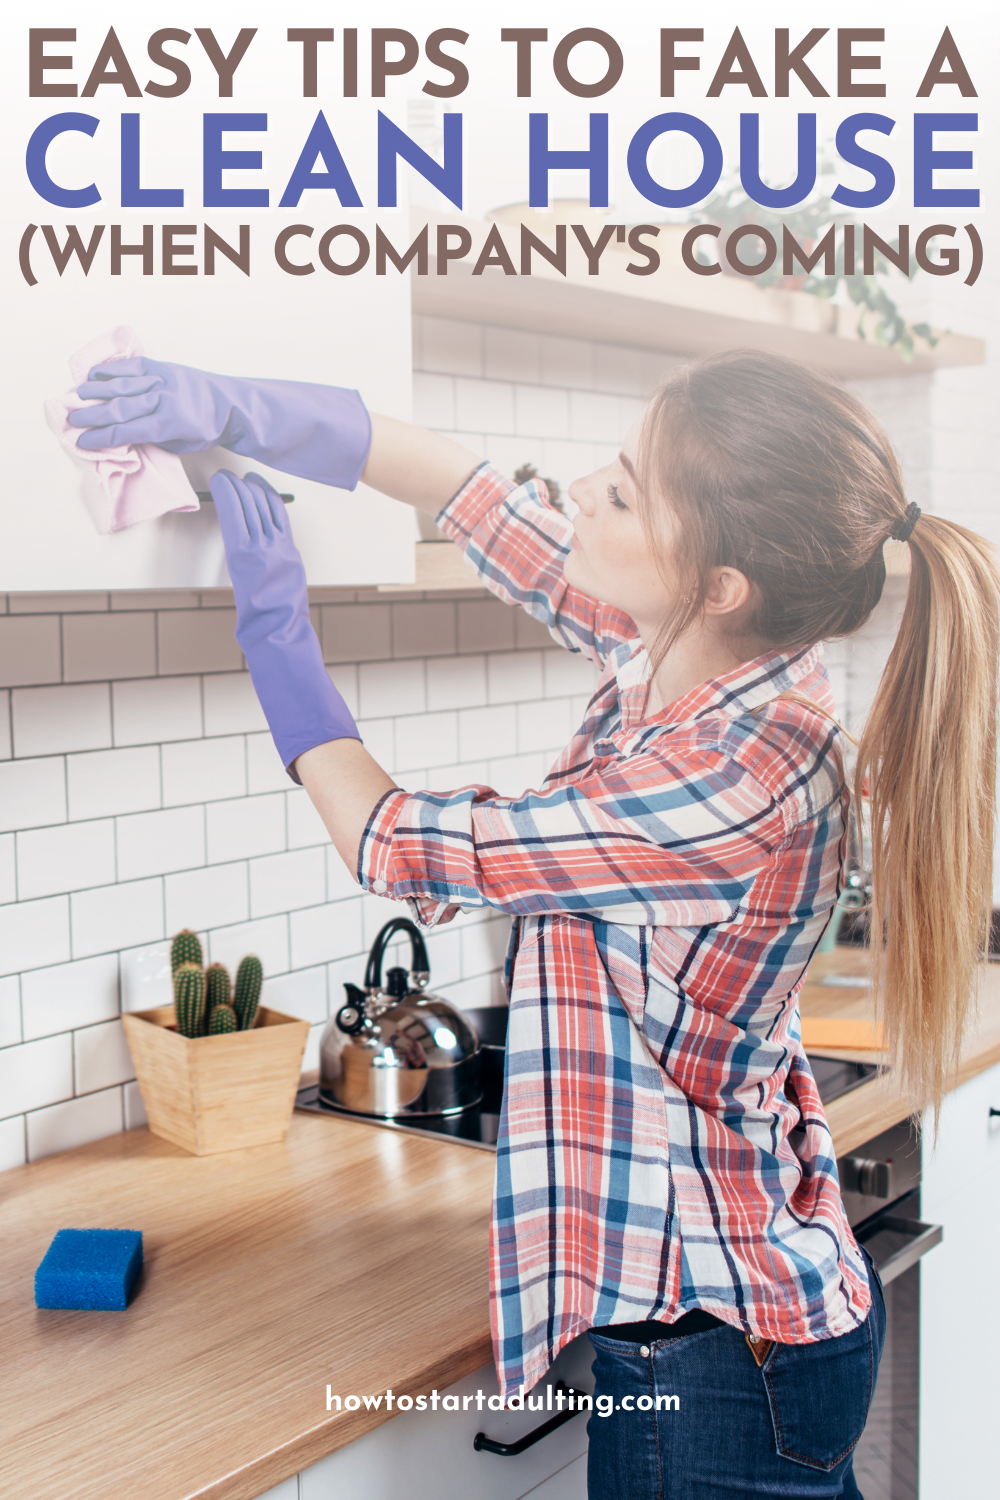 TIPS TO FAKE A CLEAN HOUSE FAST